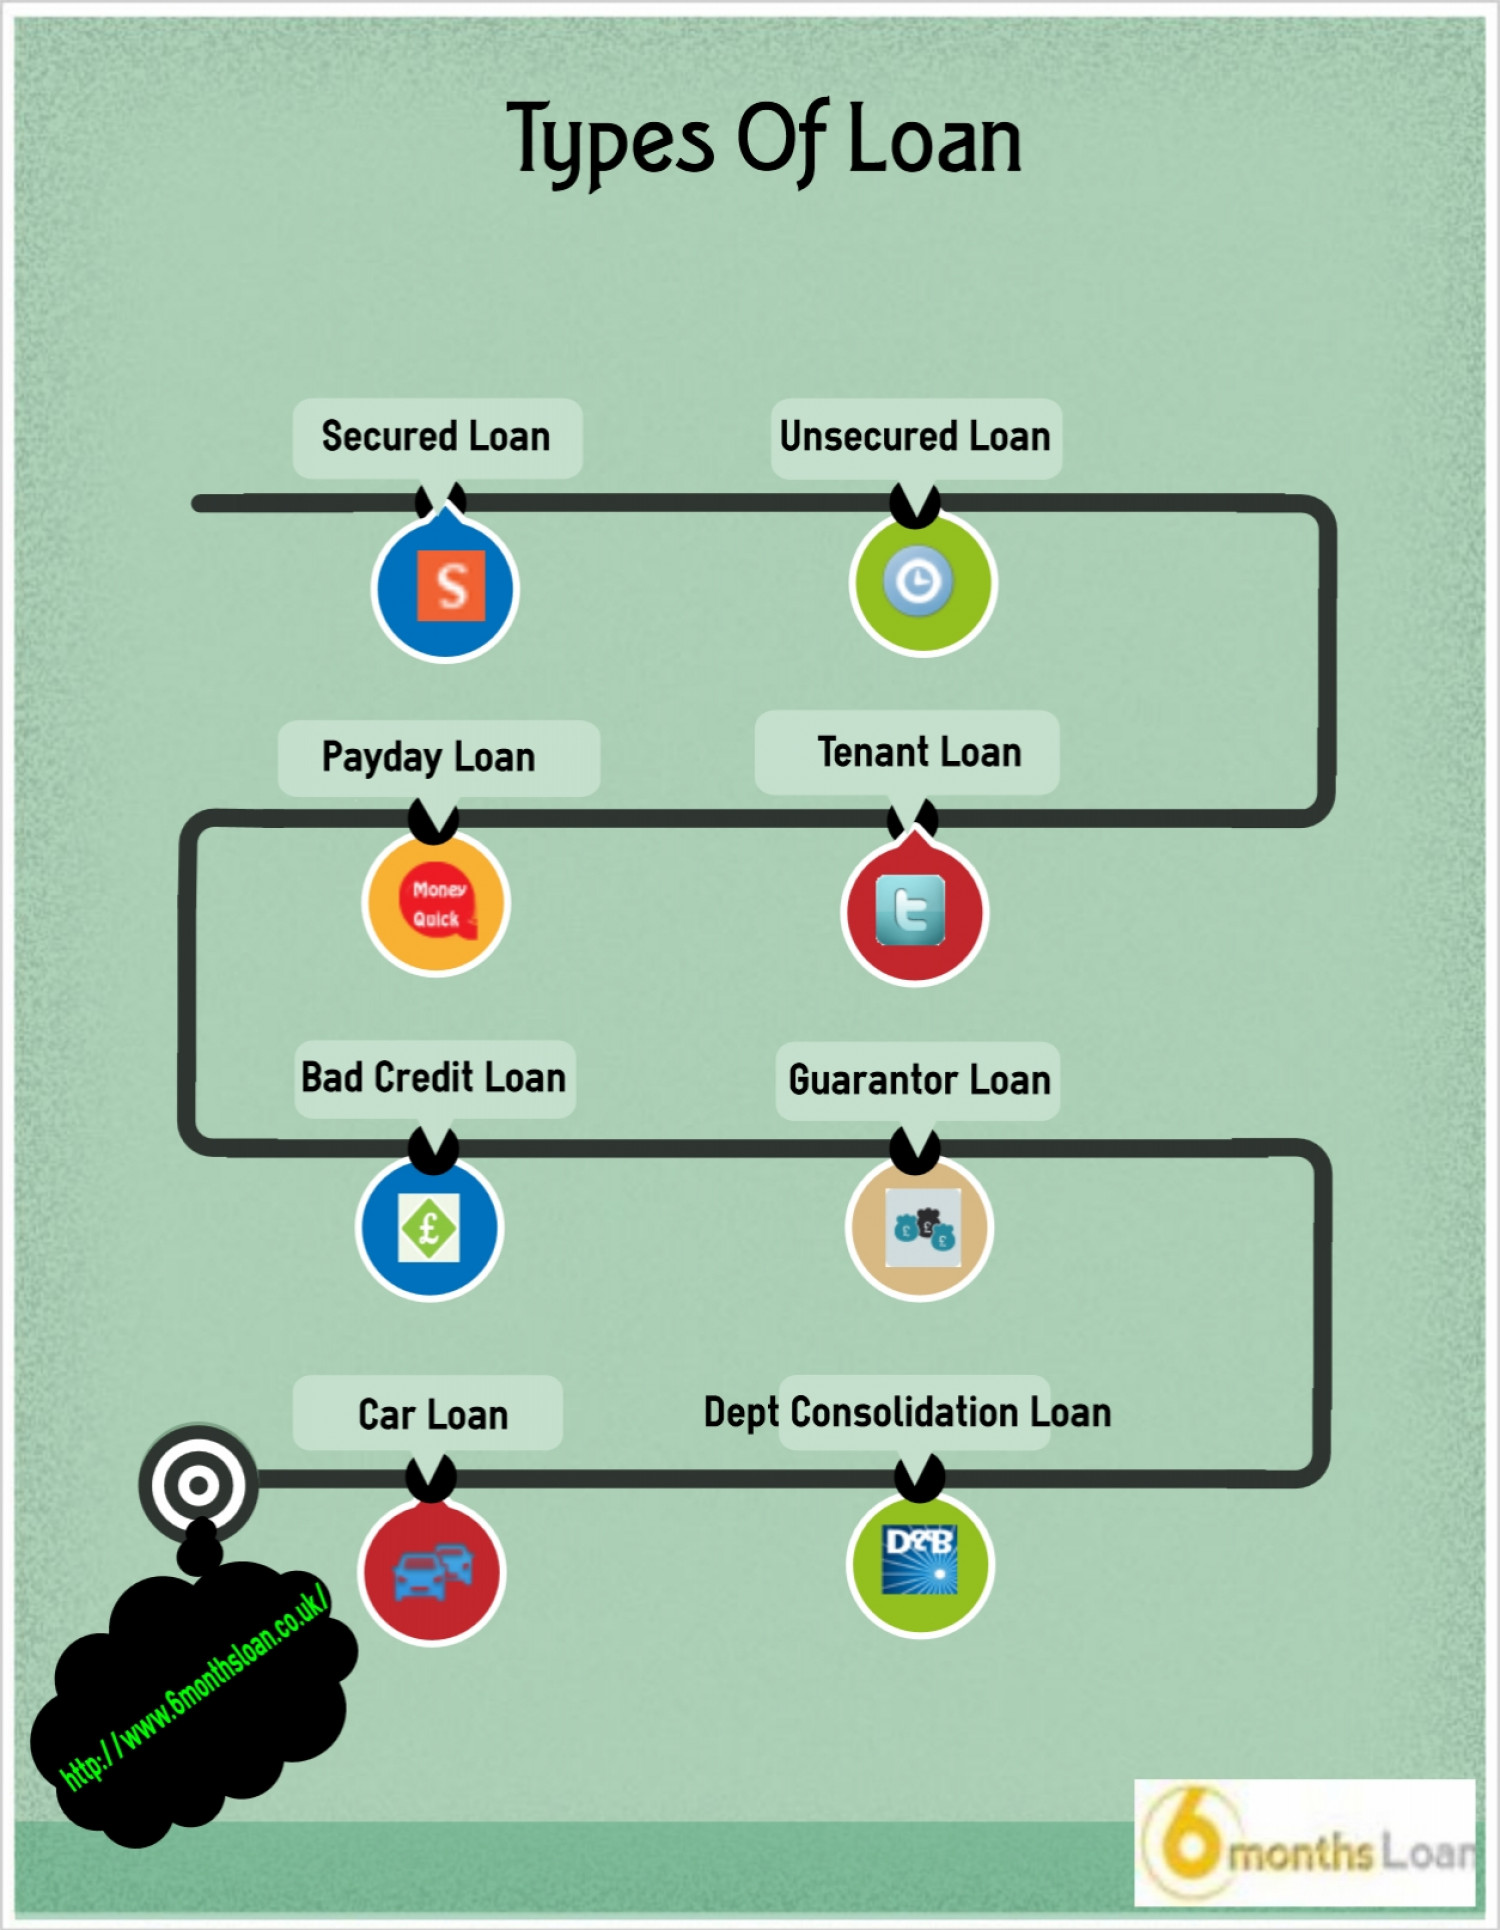 Types Of Loan Infographic